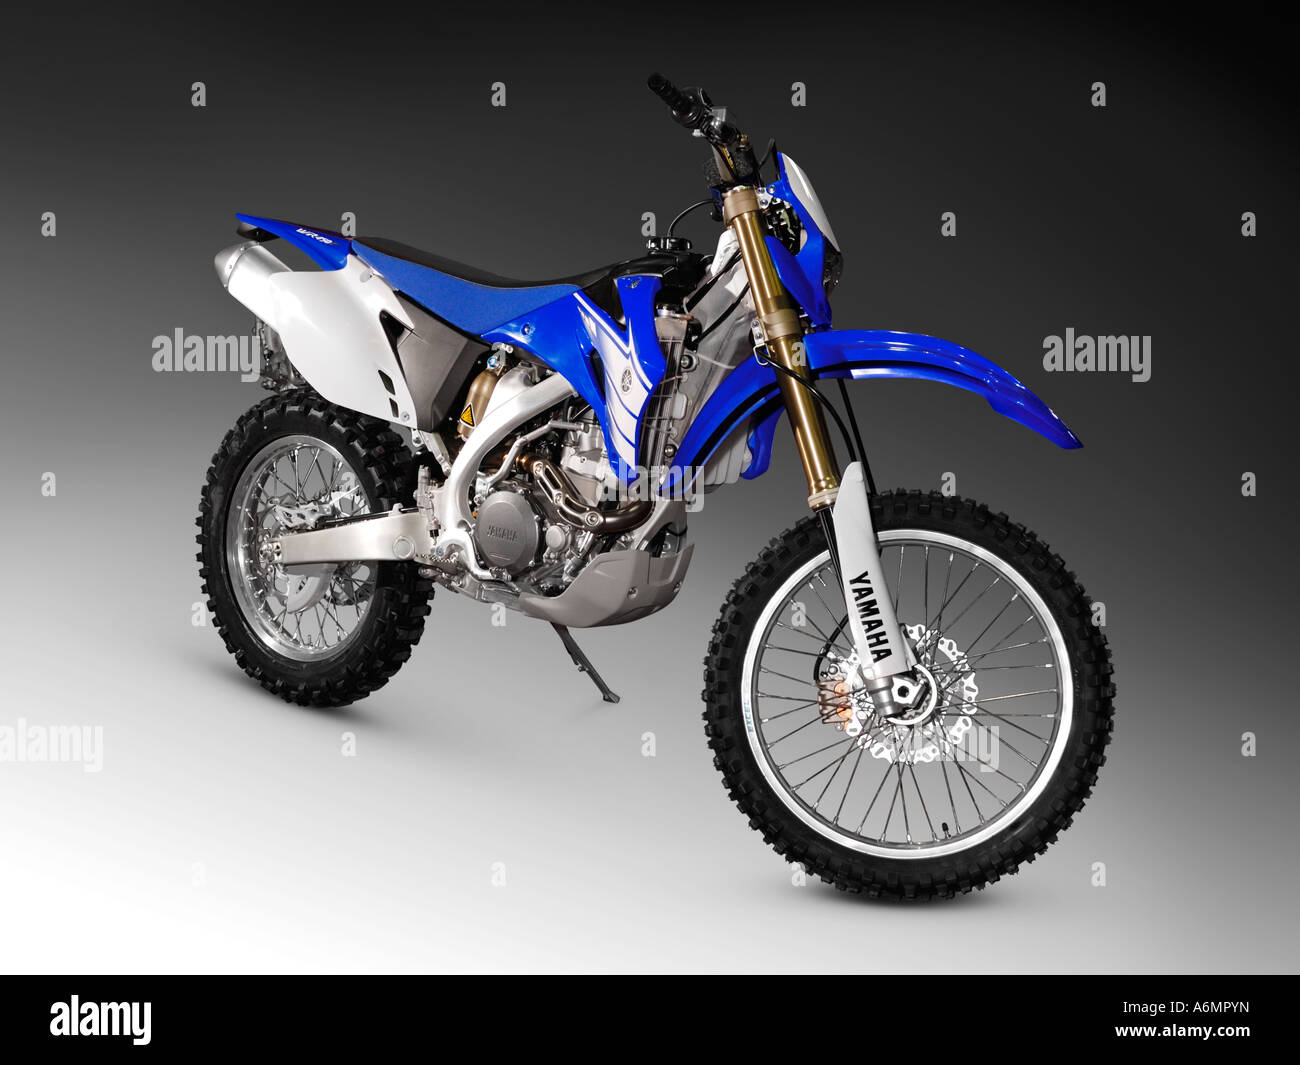 Yamaha YZ 125 2006 bike off road racing motorcycle - Stock Image